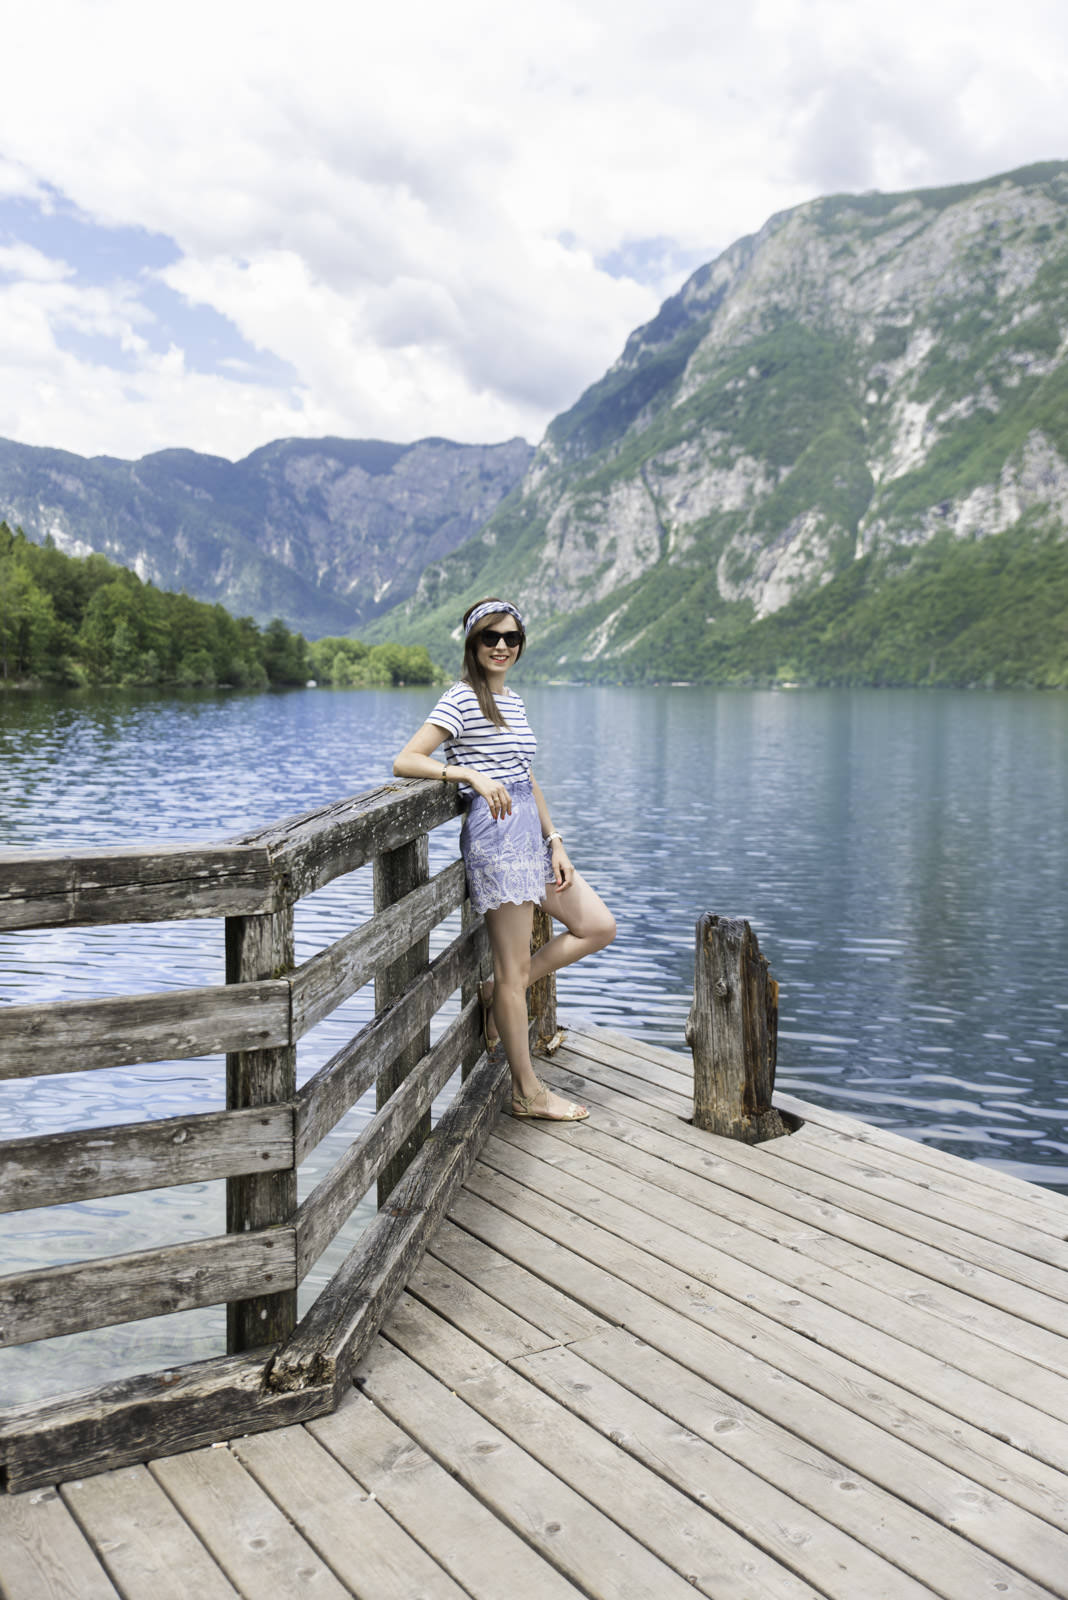 Blog-Mode-And-The-City-Lifestyle-Roadtrip-Europe-Slovenie-Ljubljana-Bled-24